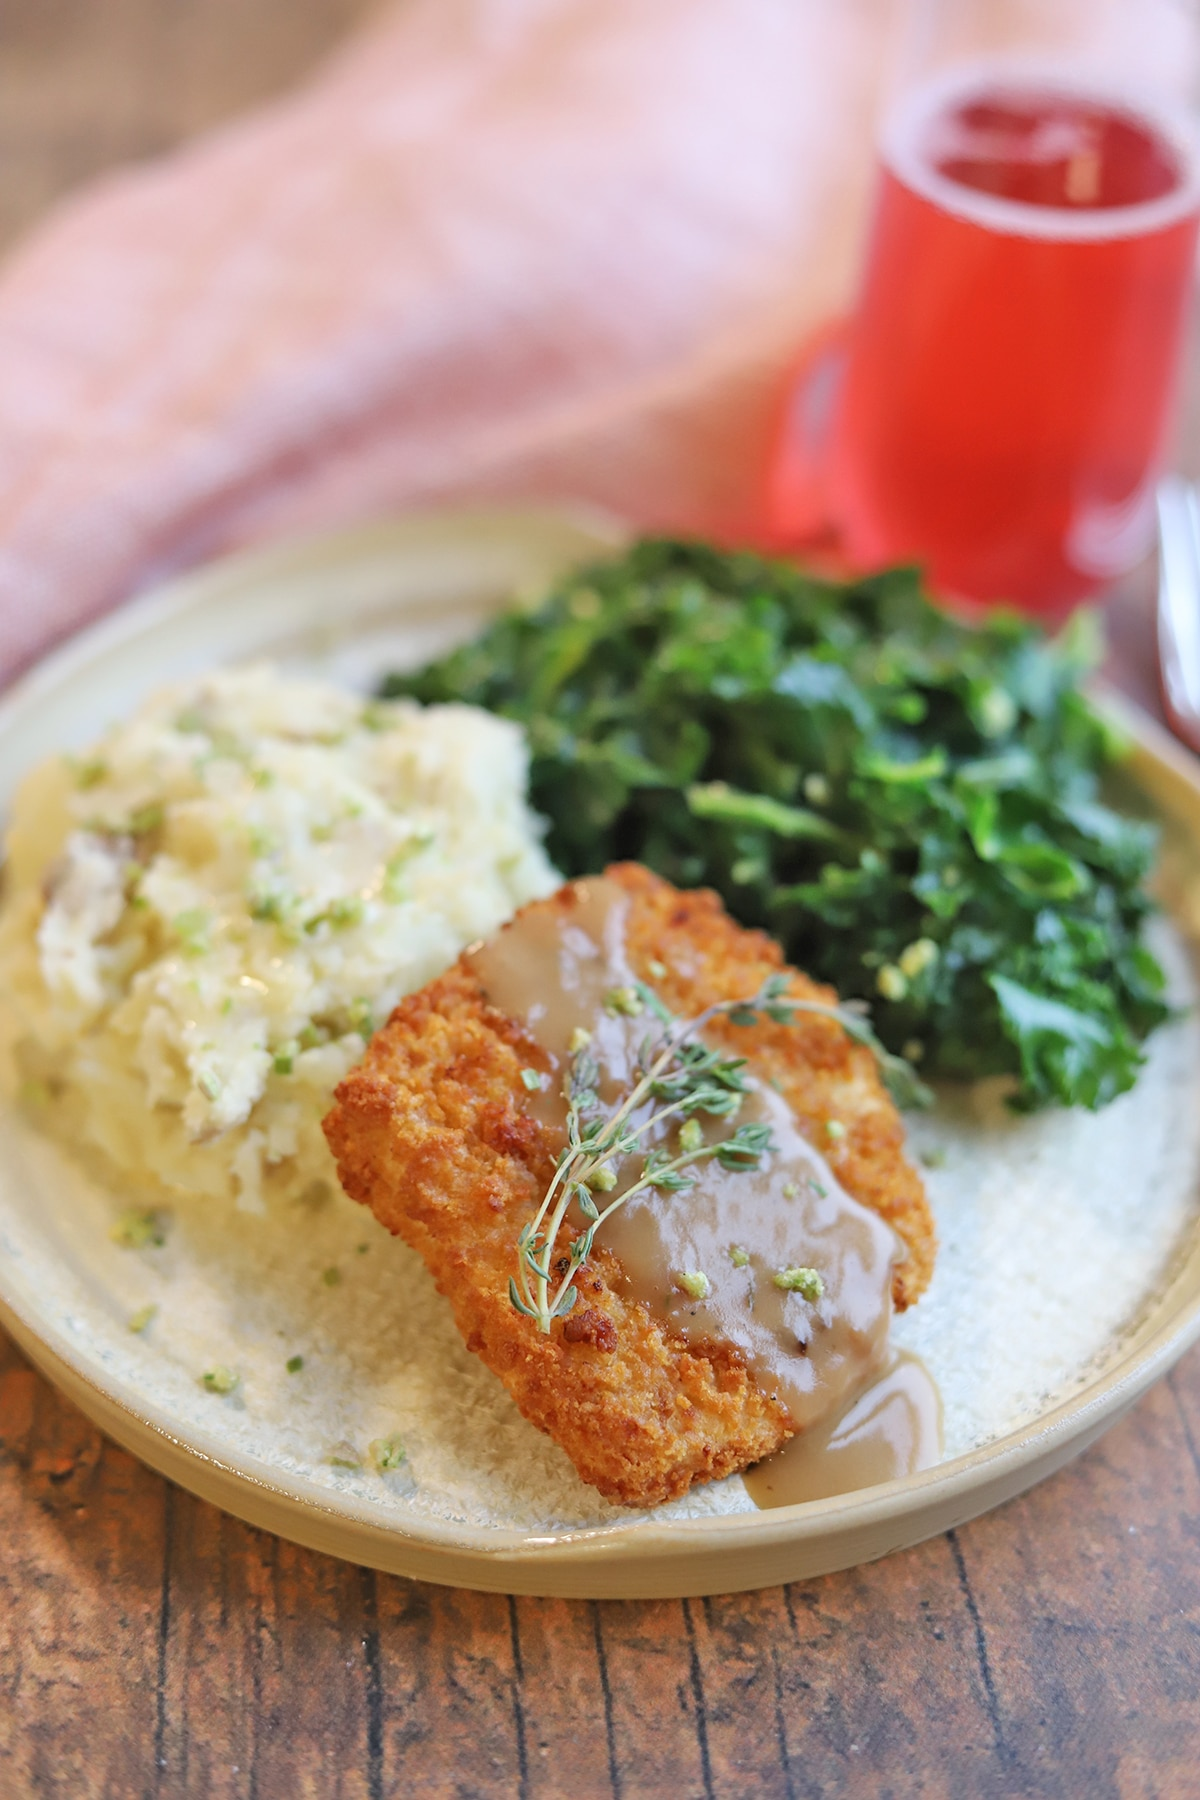 Thanksgiving for two with Gardein turk'y cutlet, mashed potatoes, and kale on plate.